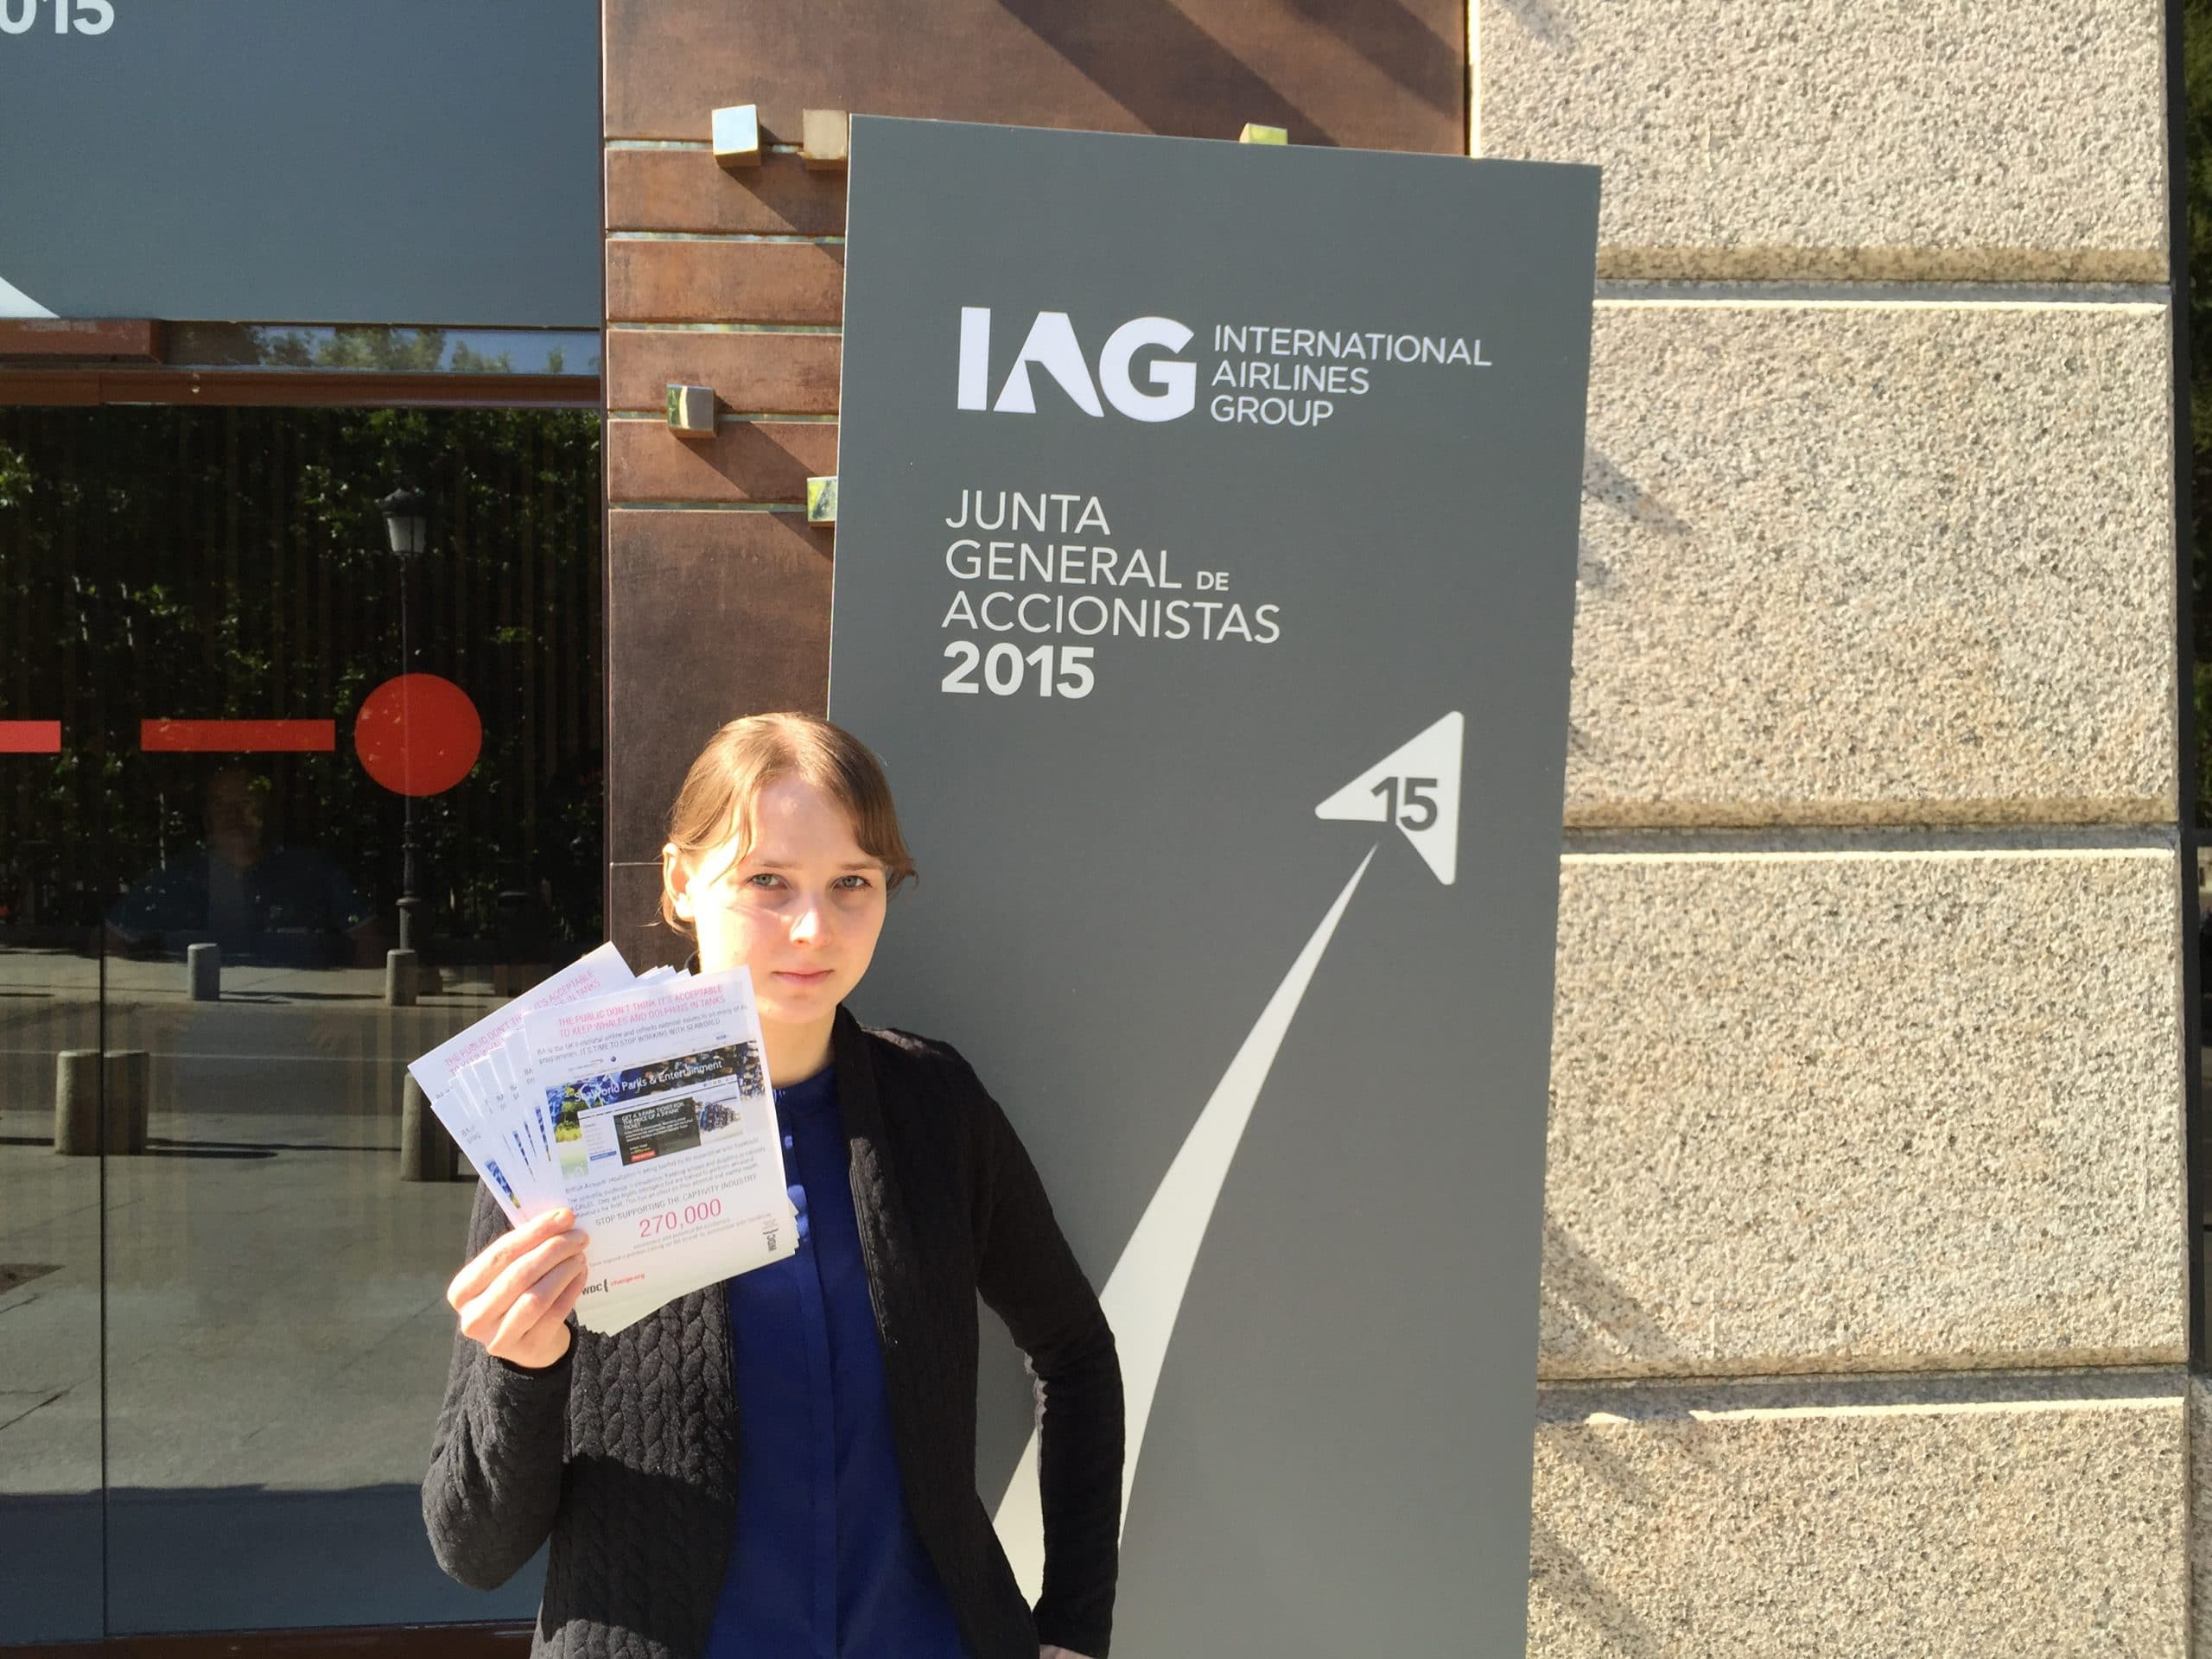 Here I am about to go in to the IAG shareholders meeting.